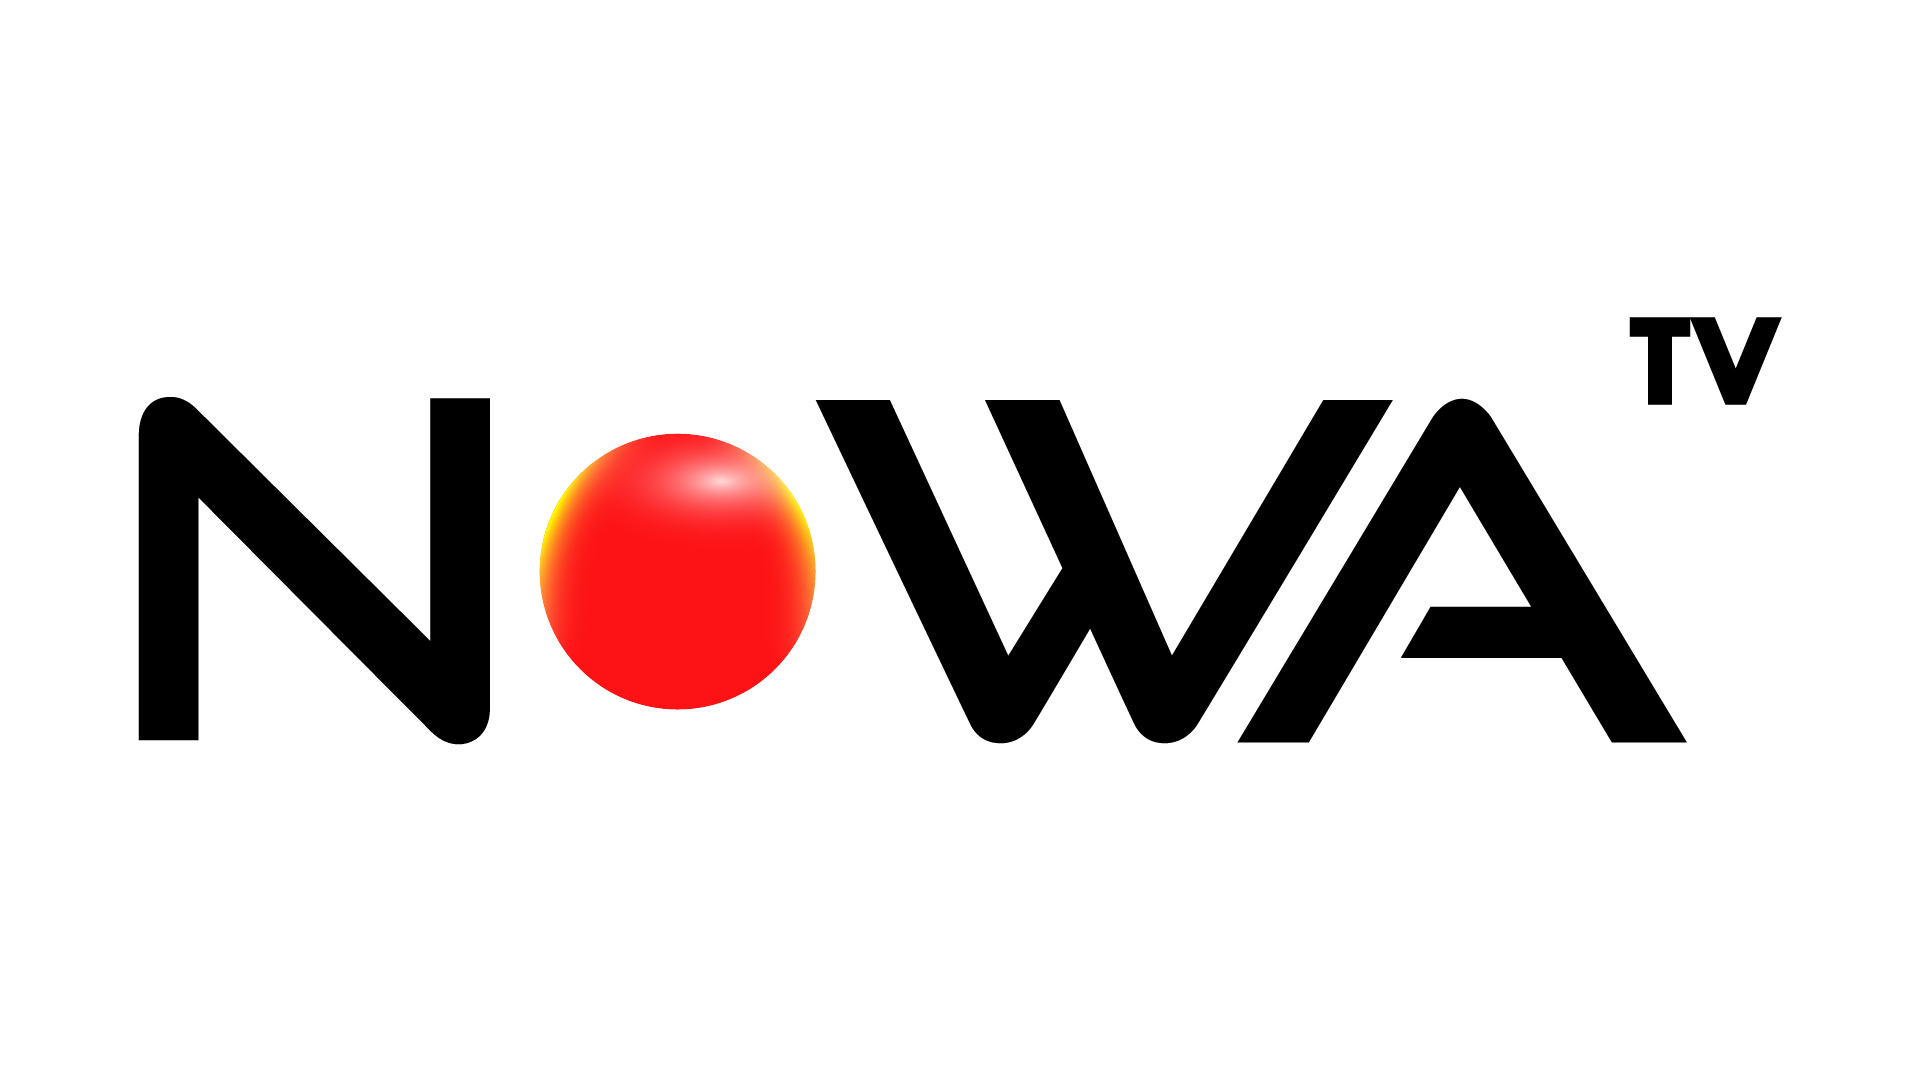 NOWA TV HD